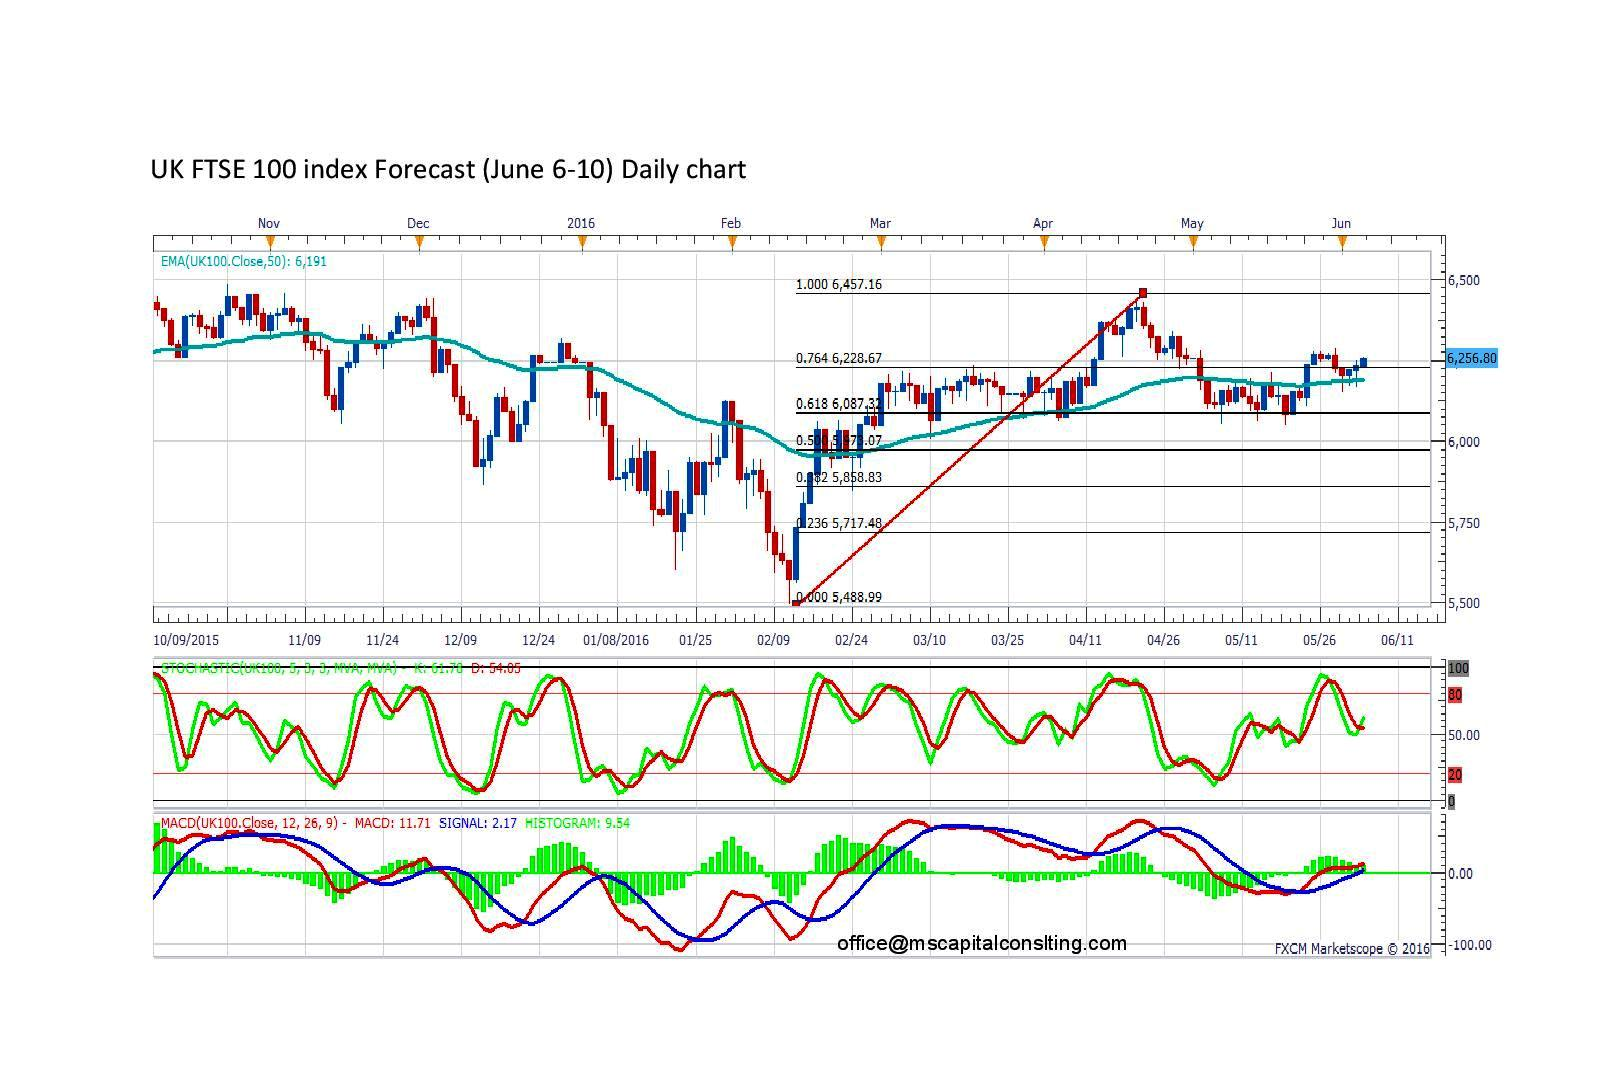 Is the equal-weight sp 500 index issuing a warning to investors?